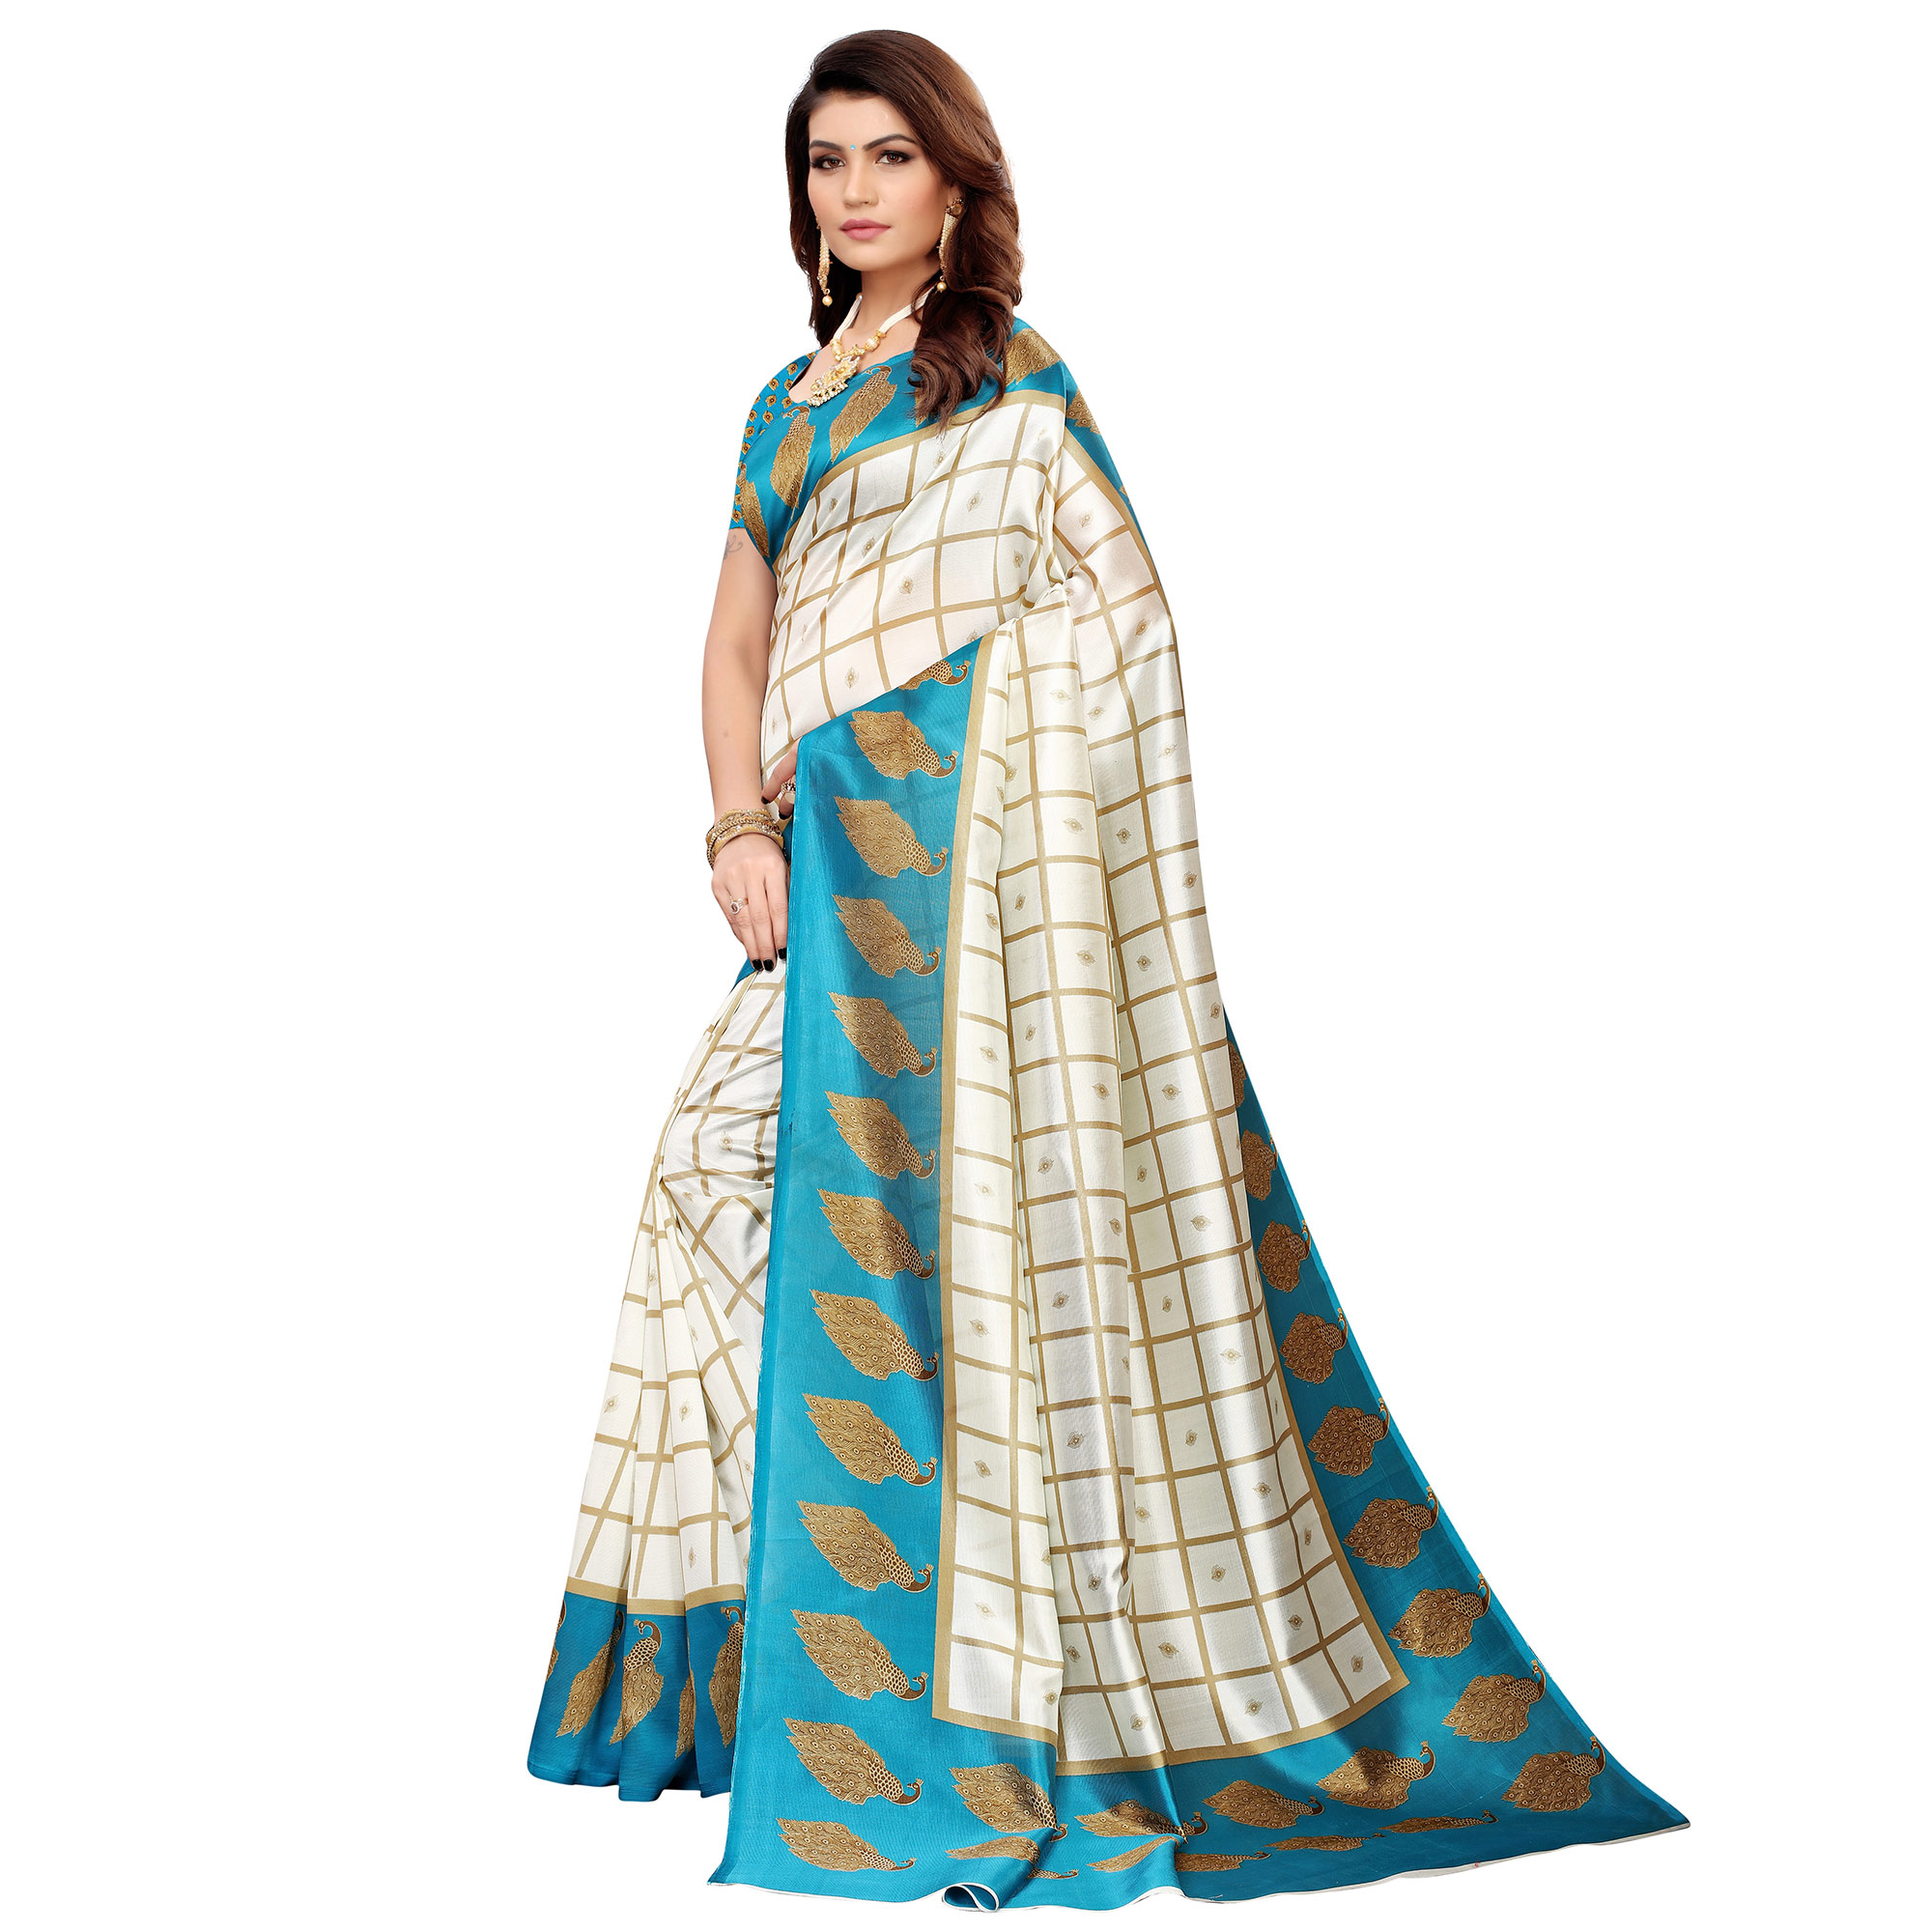 Dazzling Off White-Blue Colored Casual Printed Mysore Silk Saree